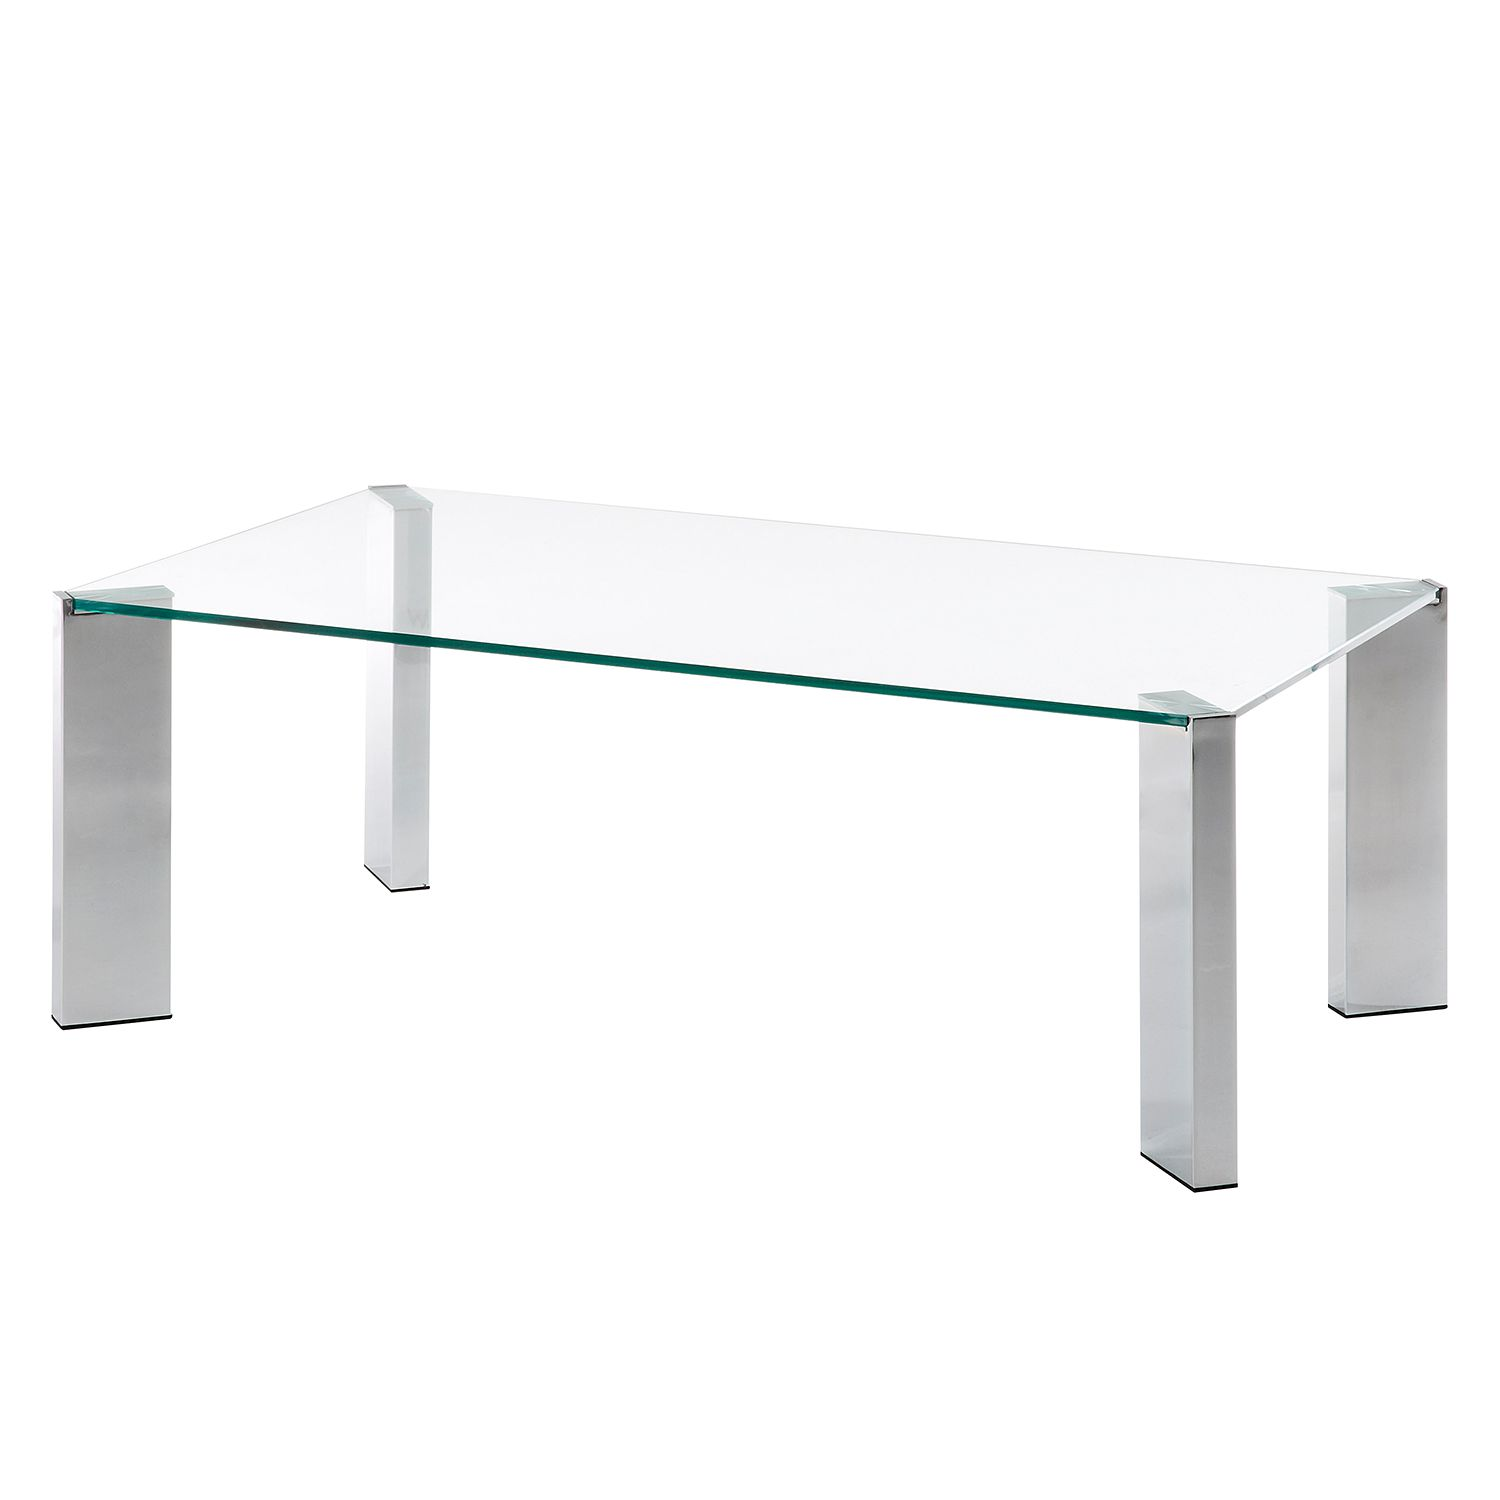 Table basse Liberotto